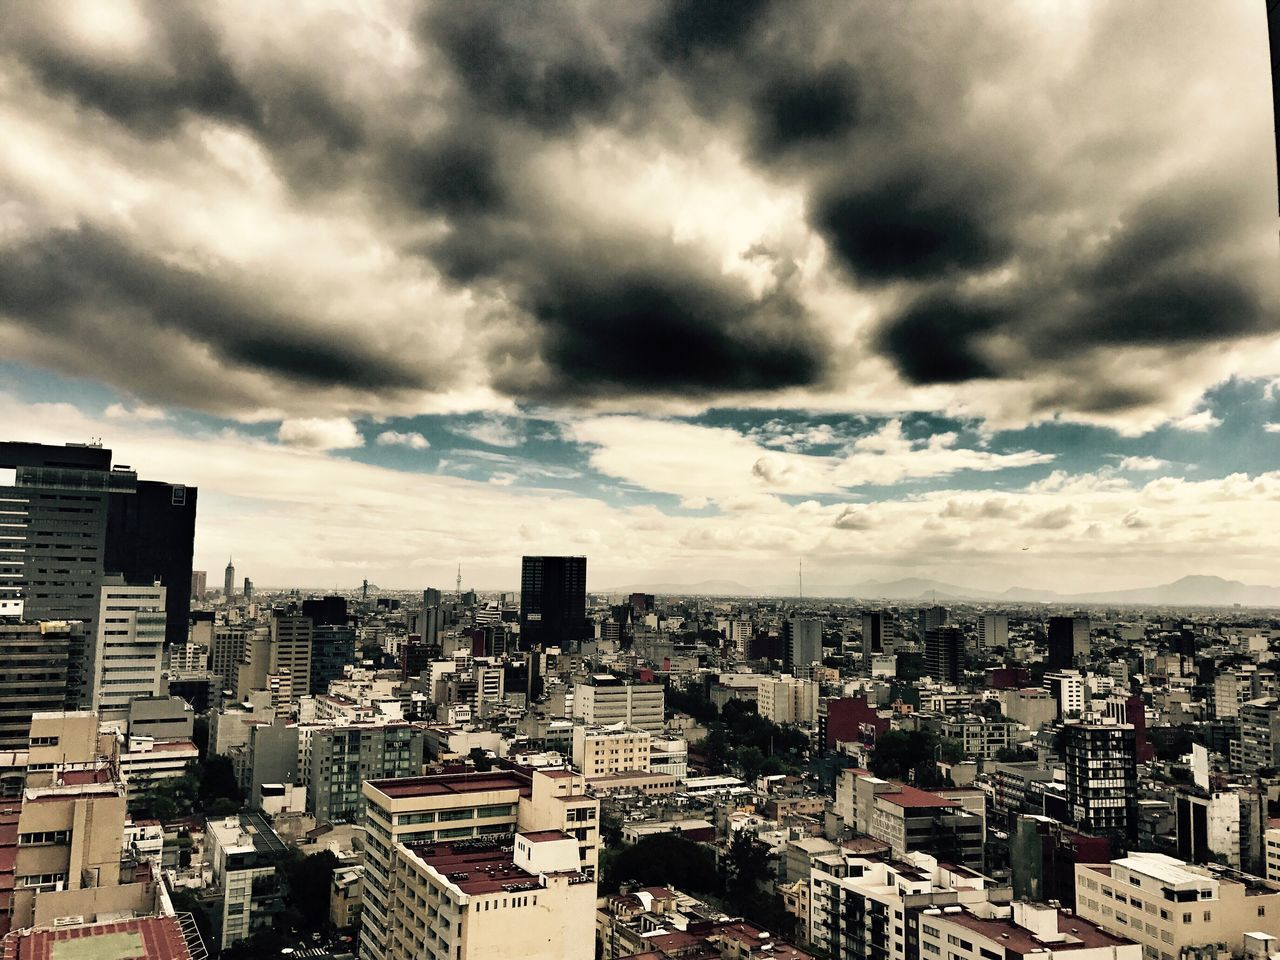 Mexico City, Mexico Architecture Cityscape Cloud - Sky